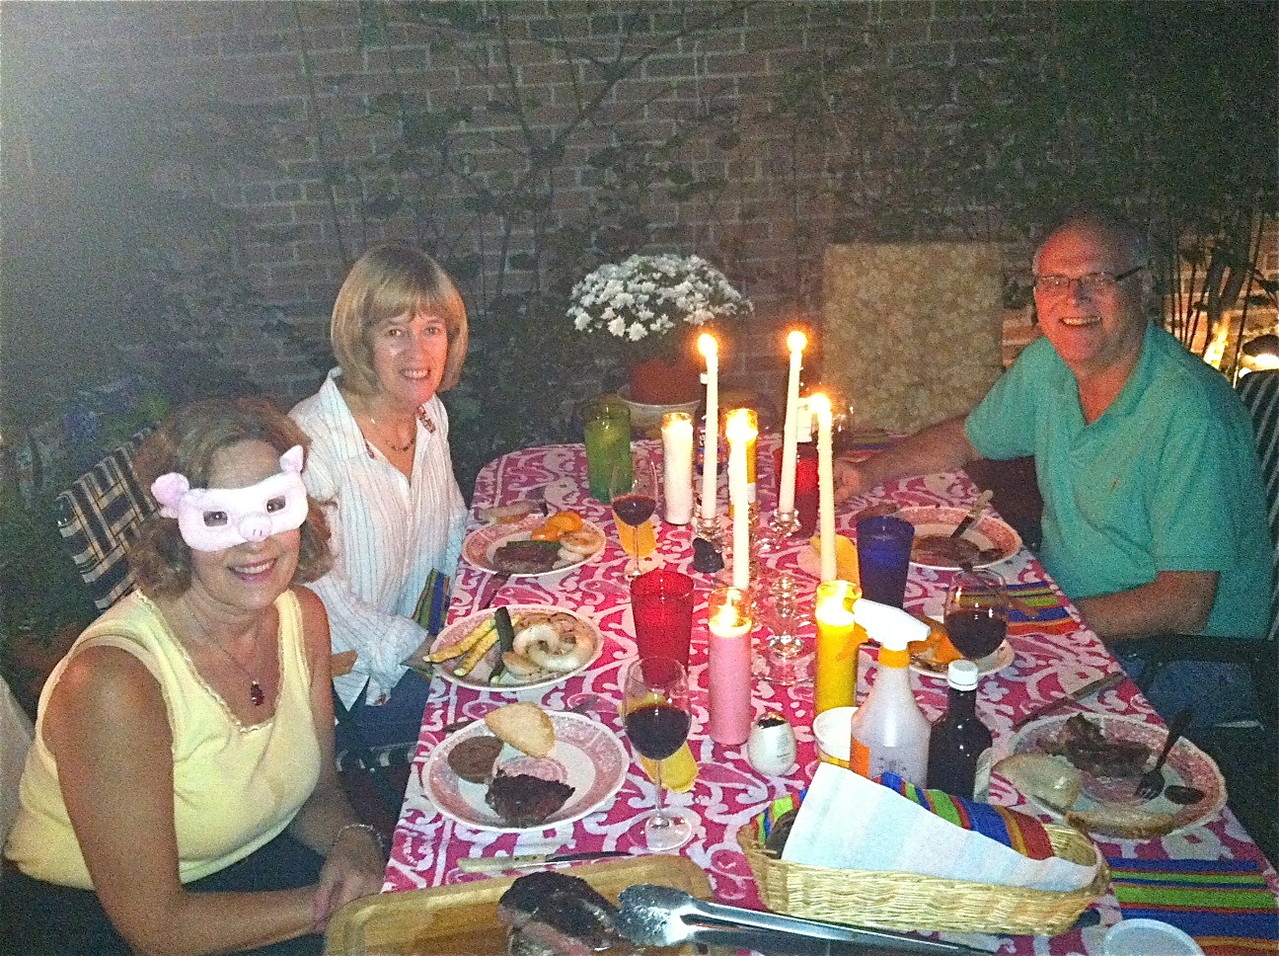 Steak dinner, Oct. 3, 2013, Lorraine in pig mask, Nancy, & Bernd..Thanks, Anna and Patrick!